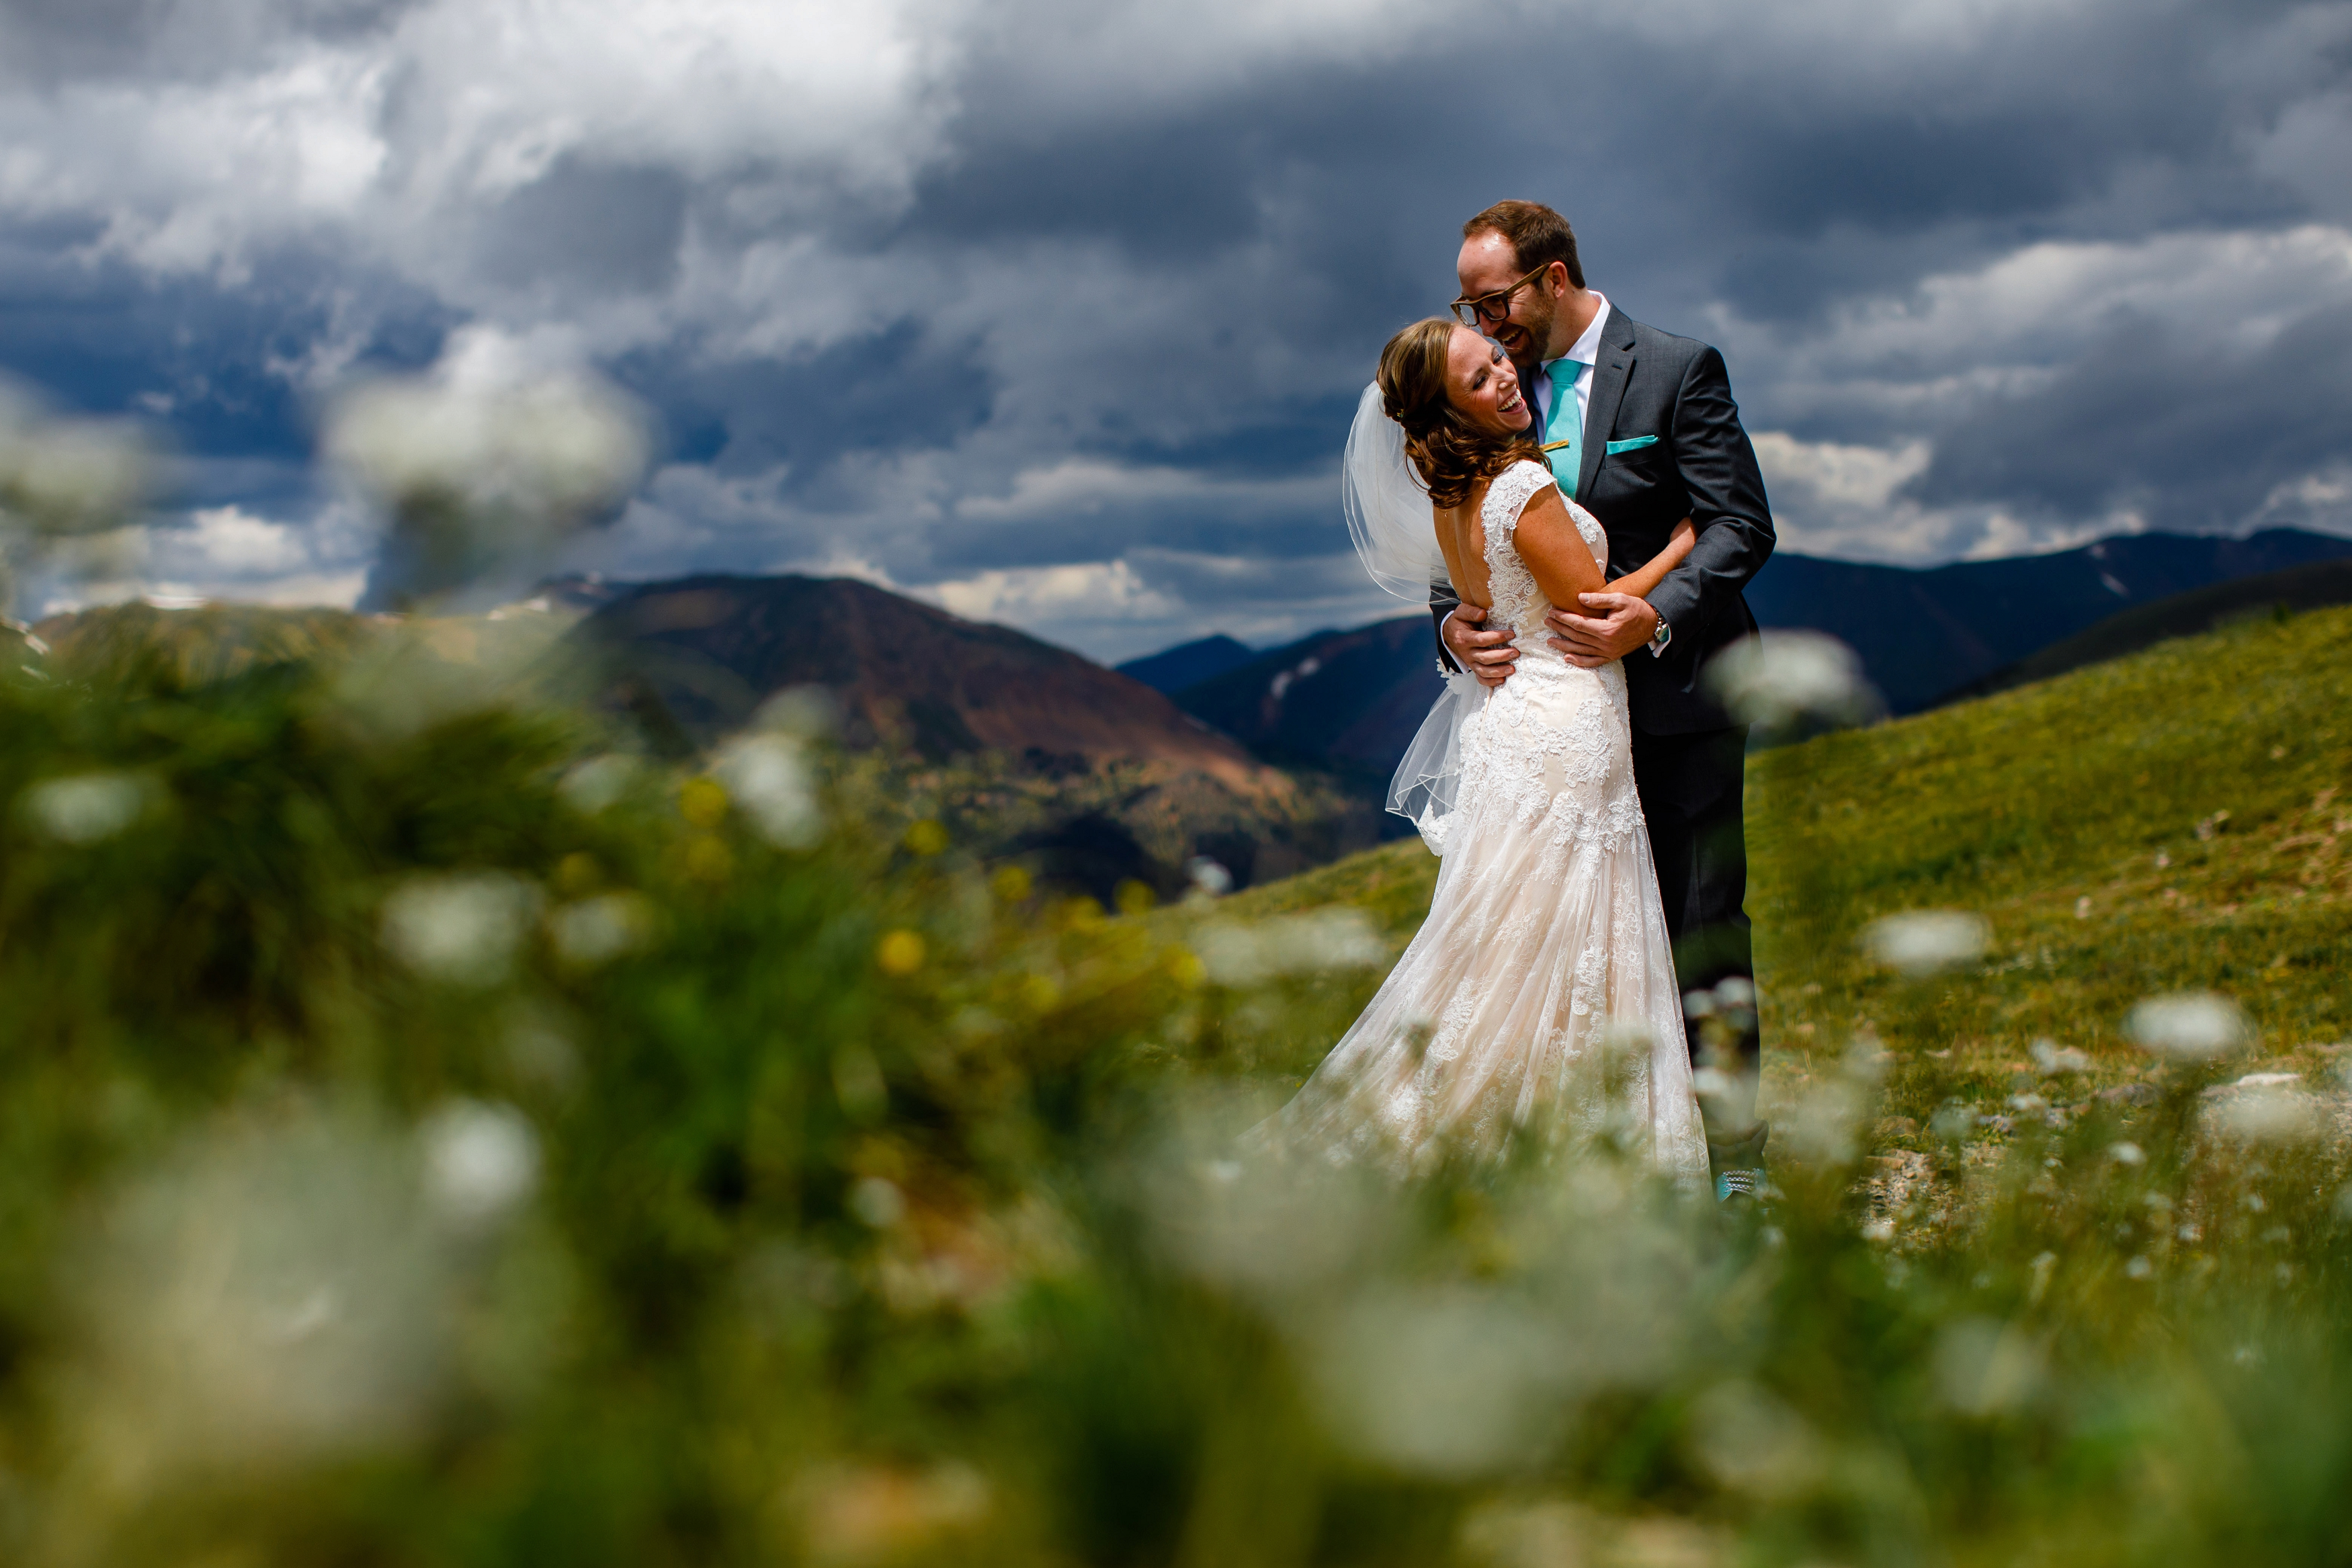 Bride & groom first look before their Arapahoe Basin Wedding